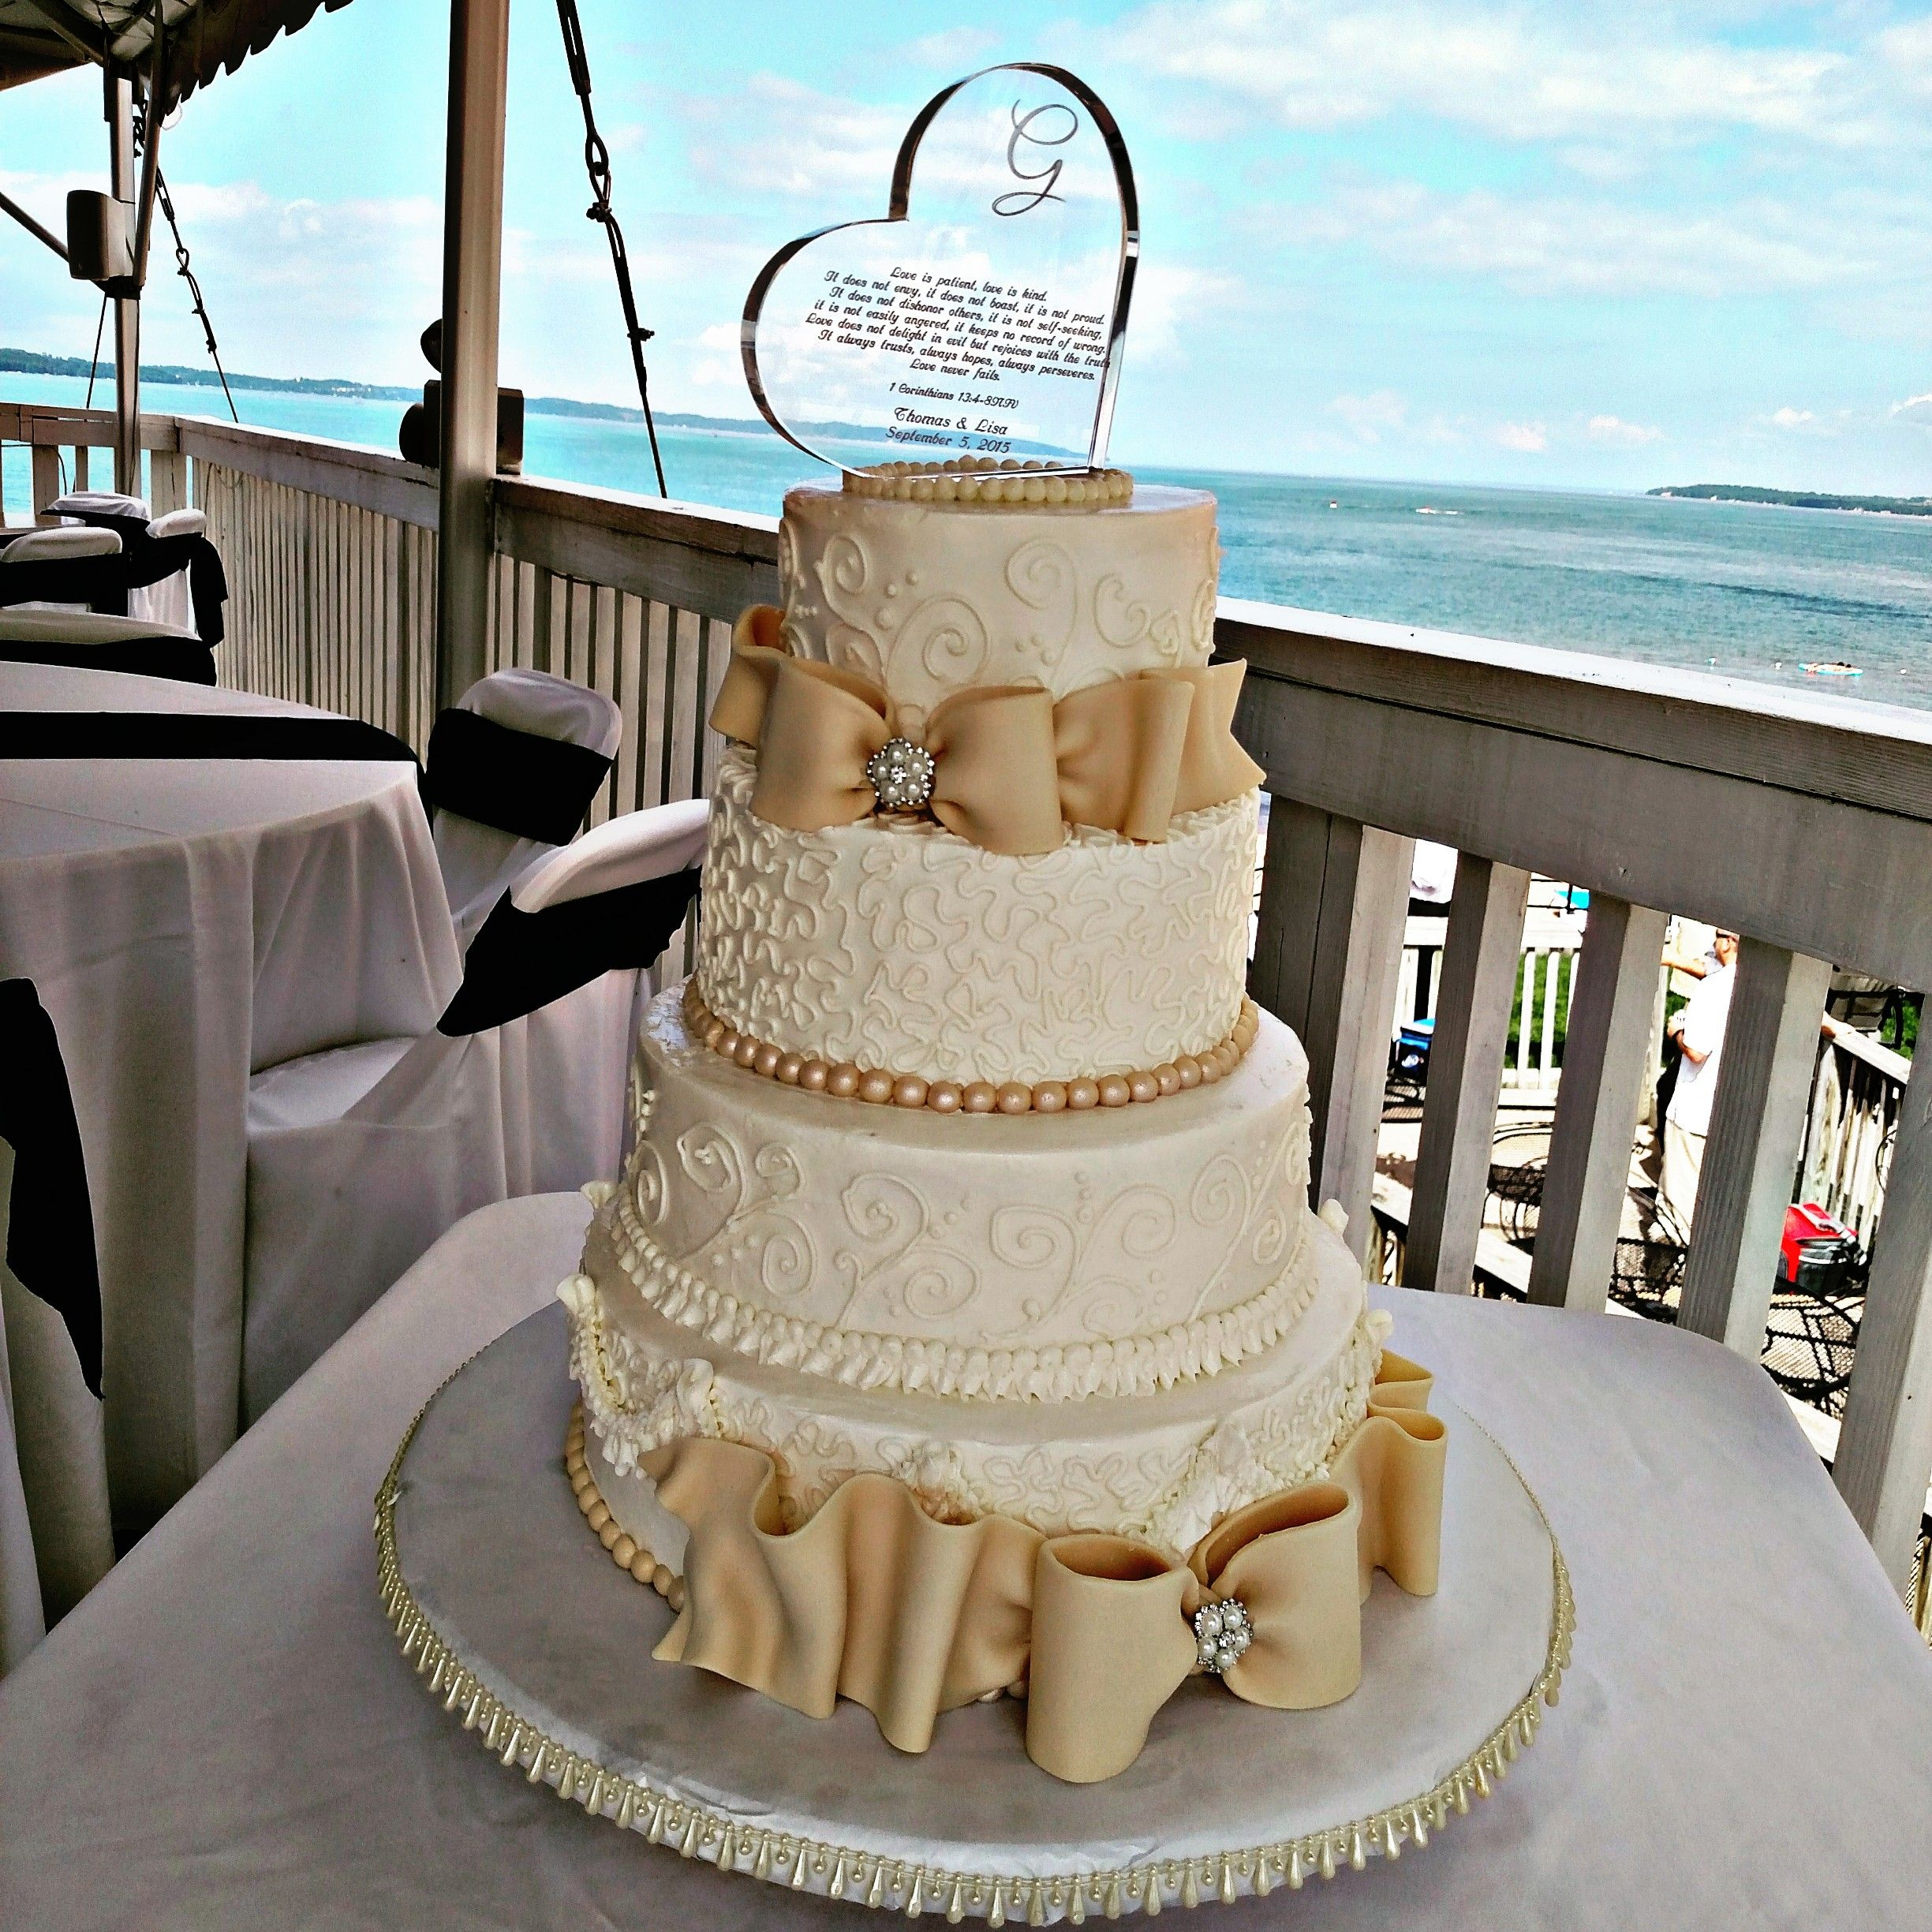 Traverse City Was The Venue For This Adorable Cake Call 231 350 7202